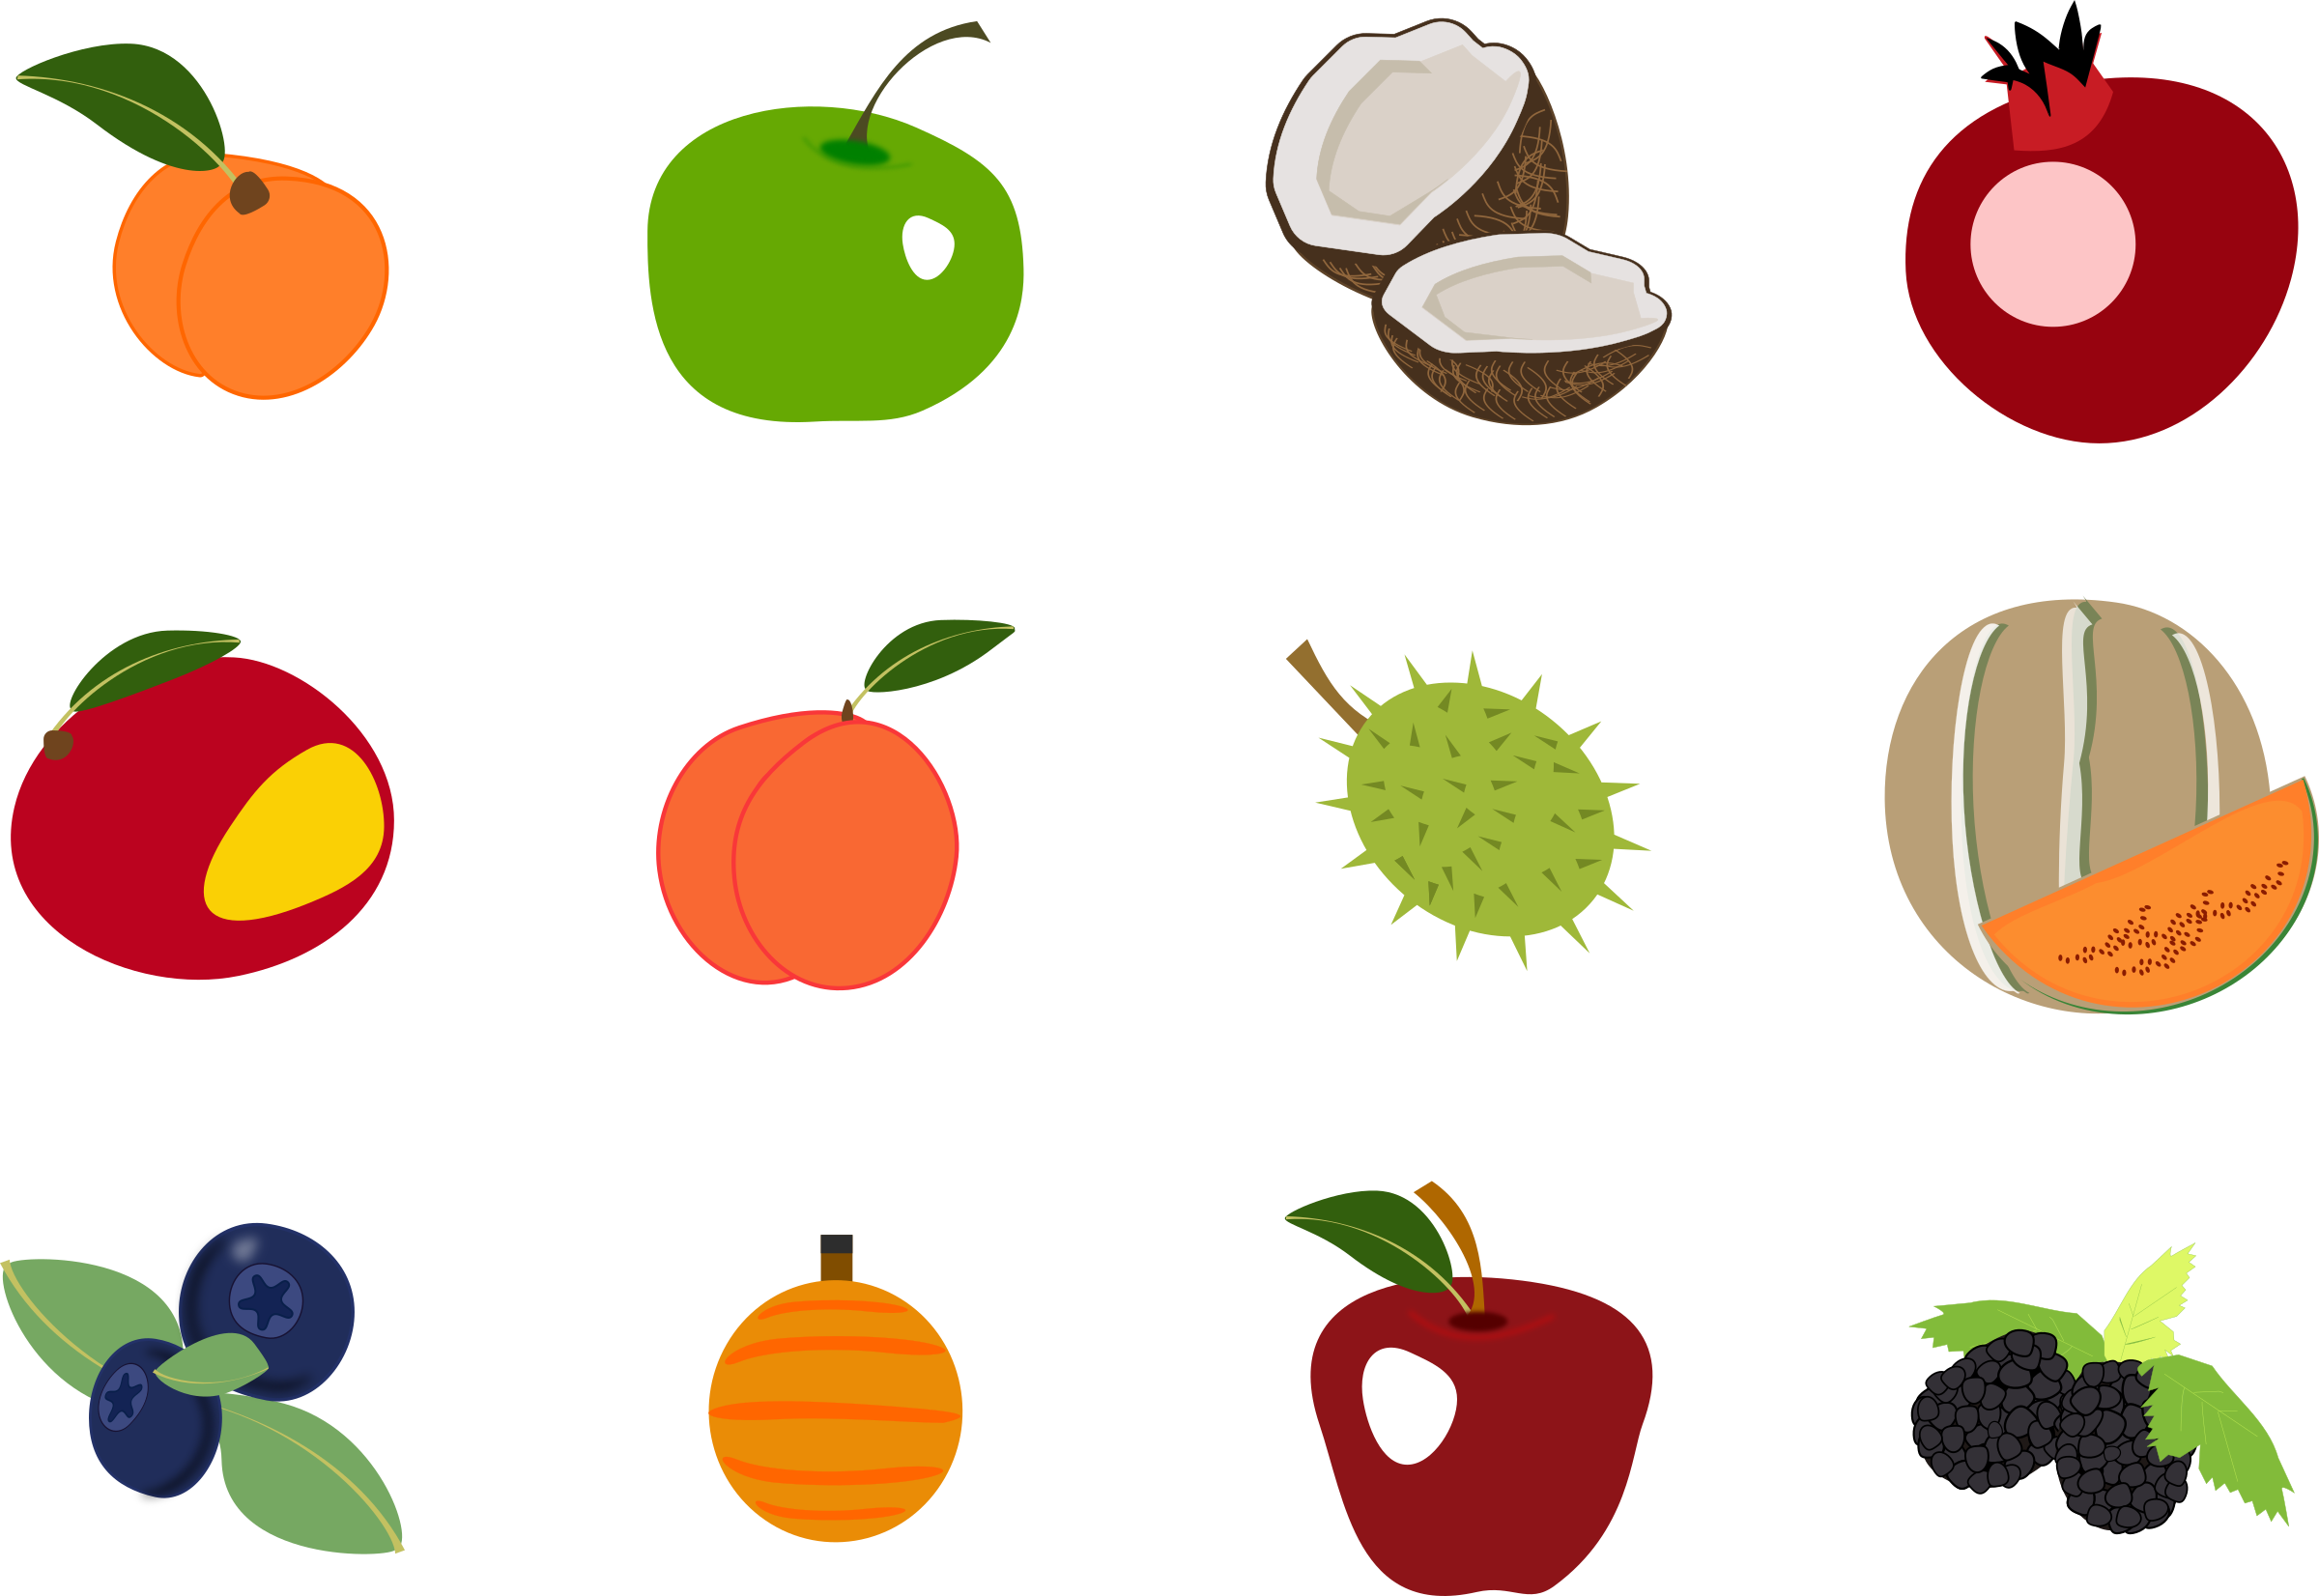 Fruit icons pack 2 by inkscapeforum.it